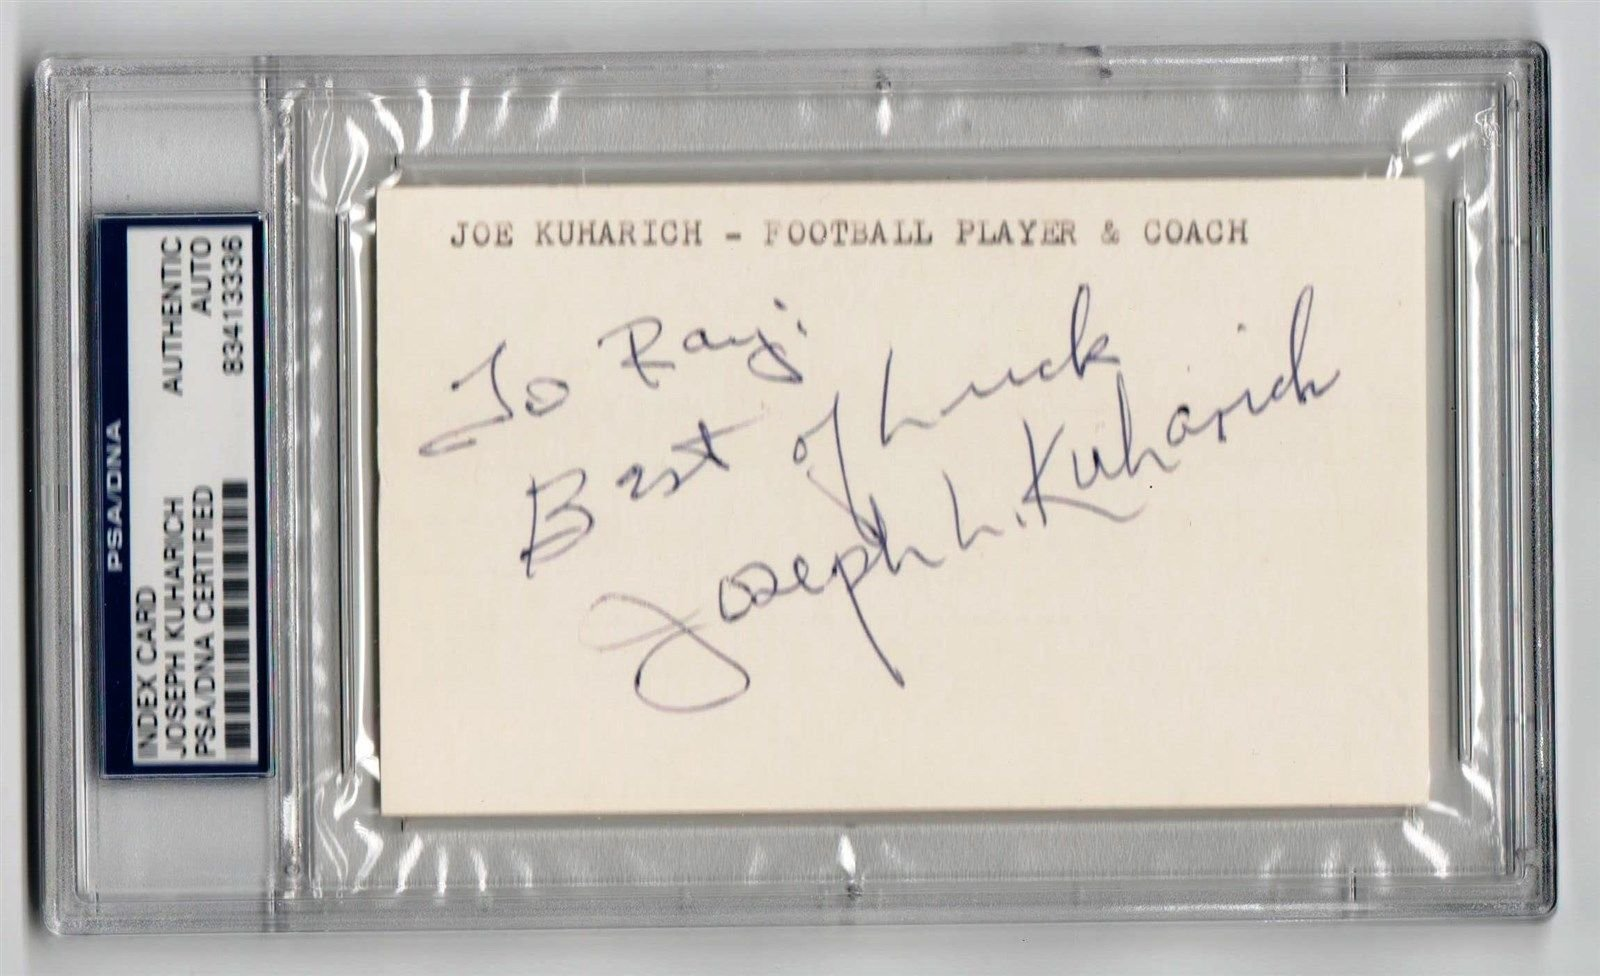 Joe Kuharich Notre Dame Coach signed 3x5 Index Card PSA/DNA Slabbed d81 RARE